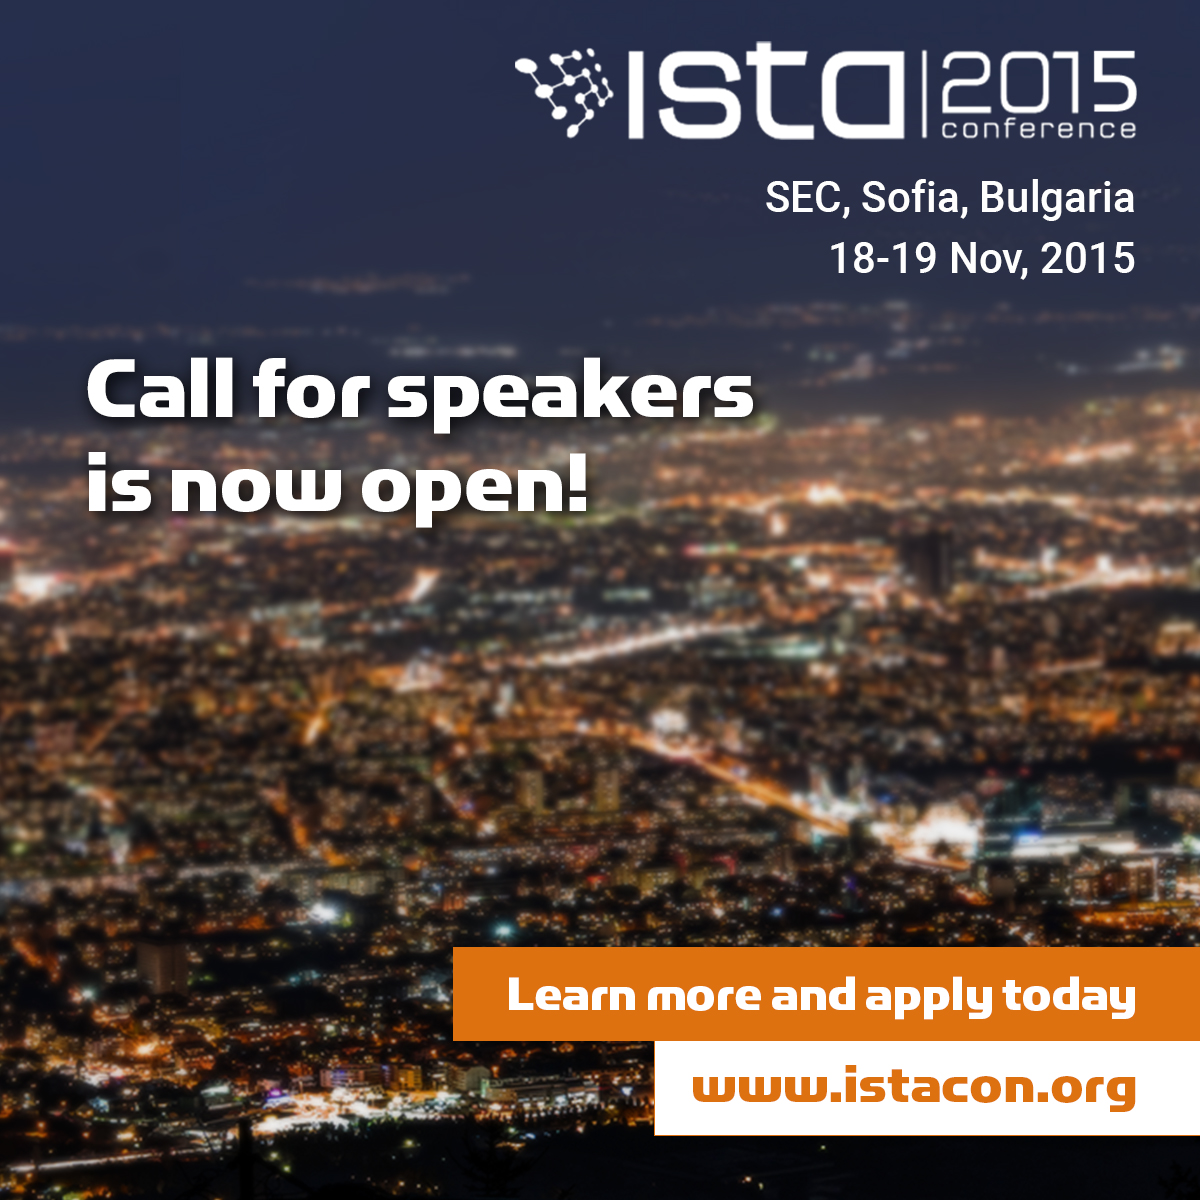 ISTA Con 2015 - Call for speakers is now open!